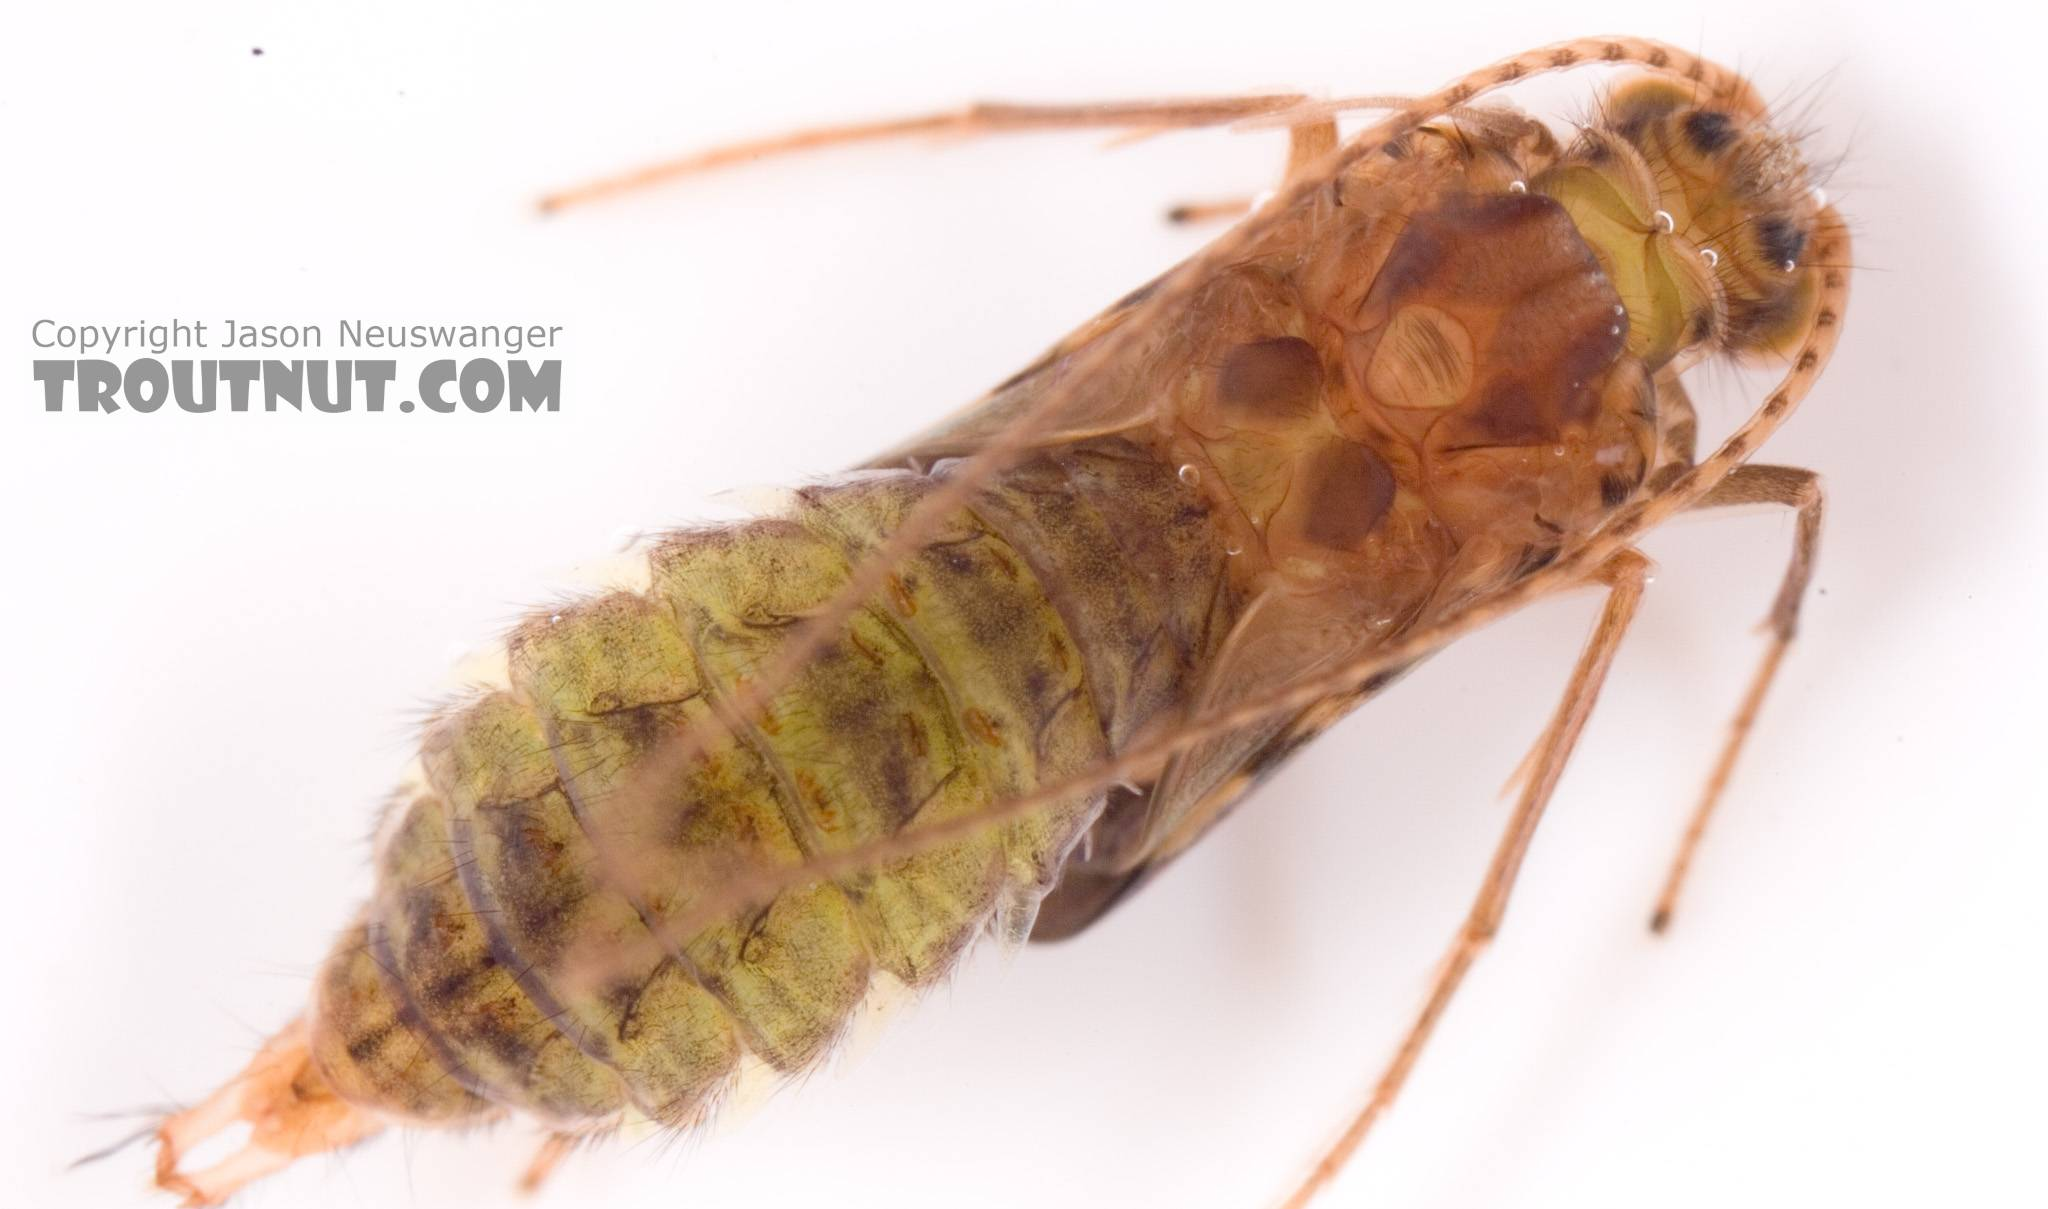 Cheumatopsyche (Little Sister Sedges) Caddisfly Pupa from Cayuta Creek in New York